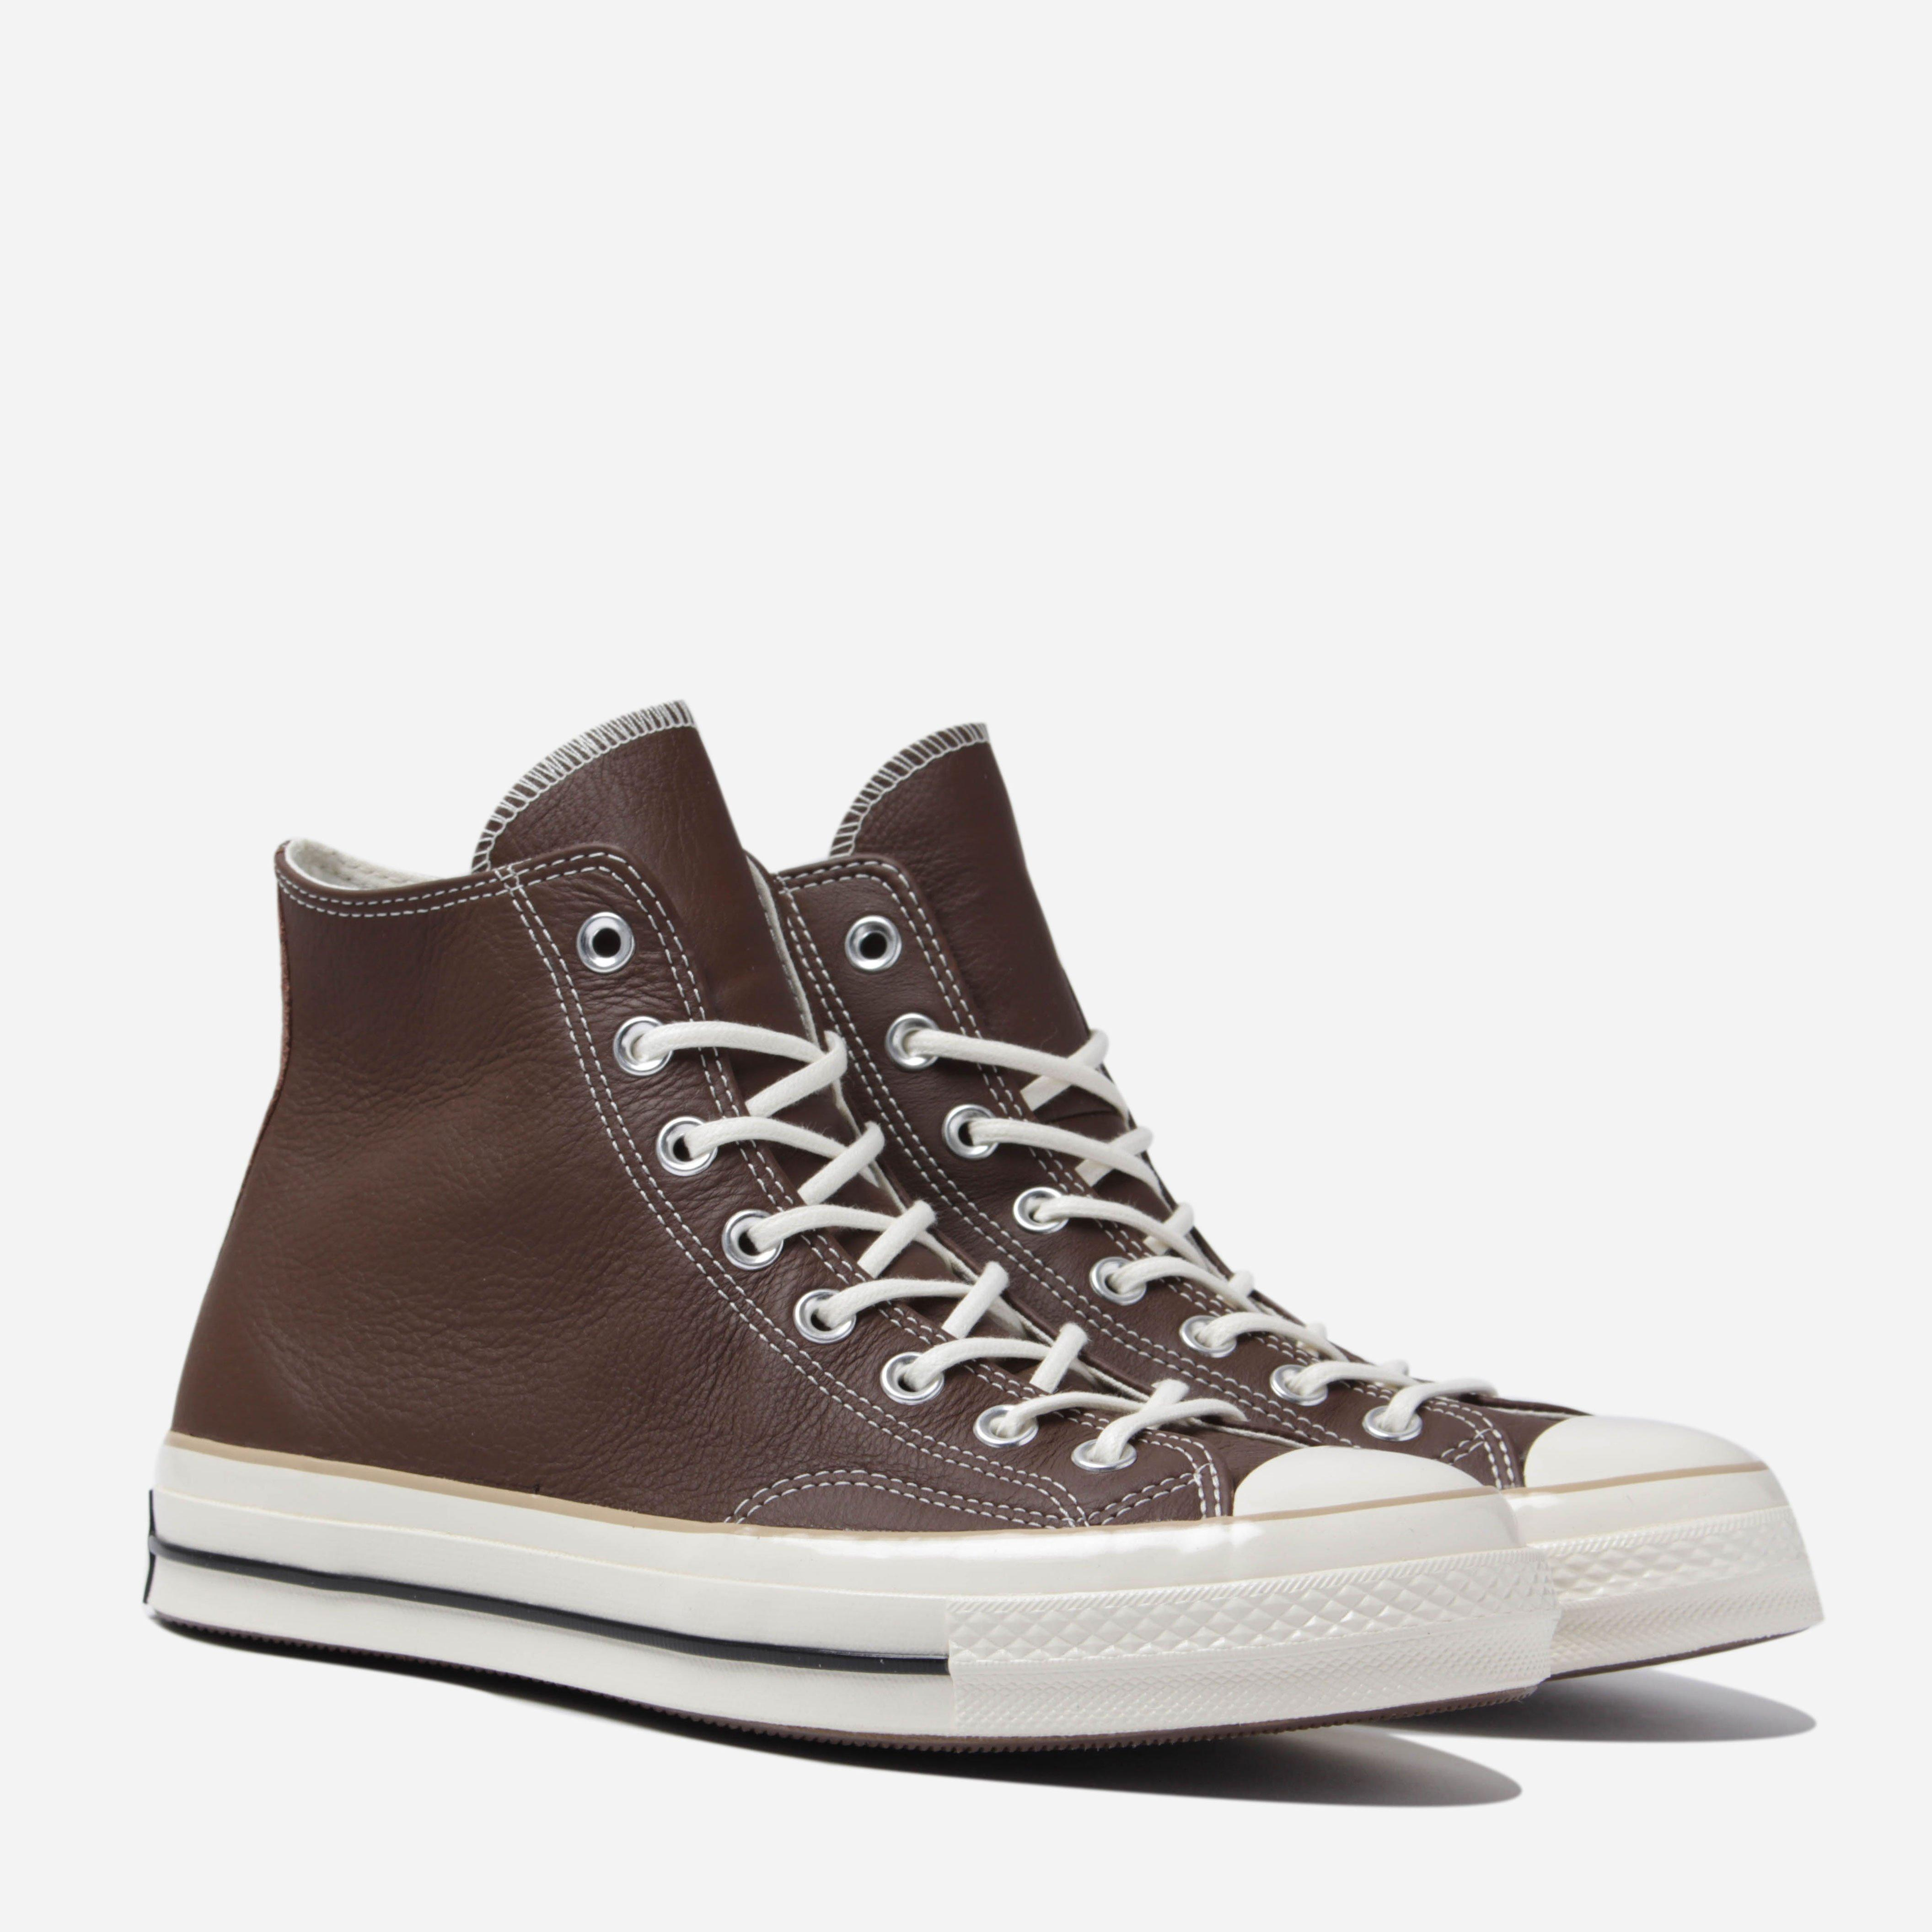 19bee5edabf9 Lyst - Converse Chuck Taylor All Star 70 Hi Leather in Brown for Men